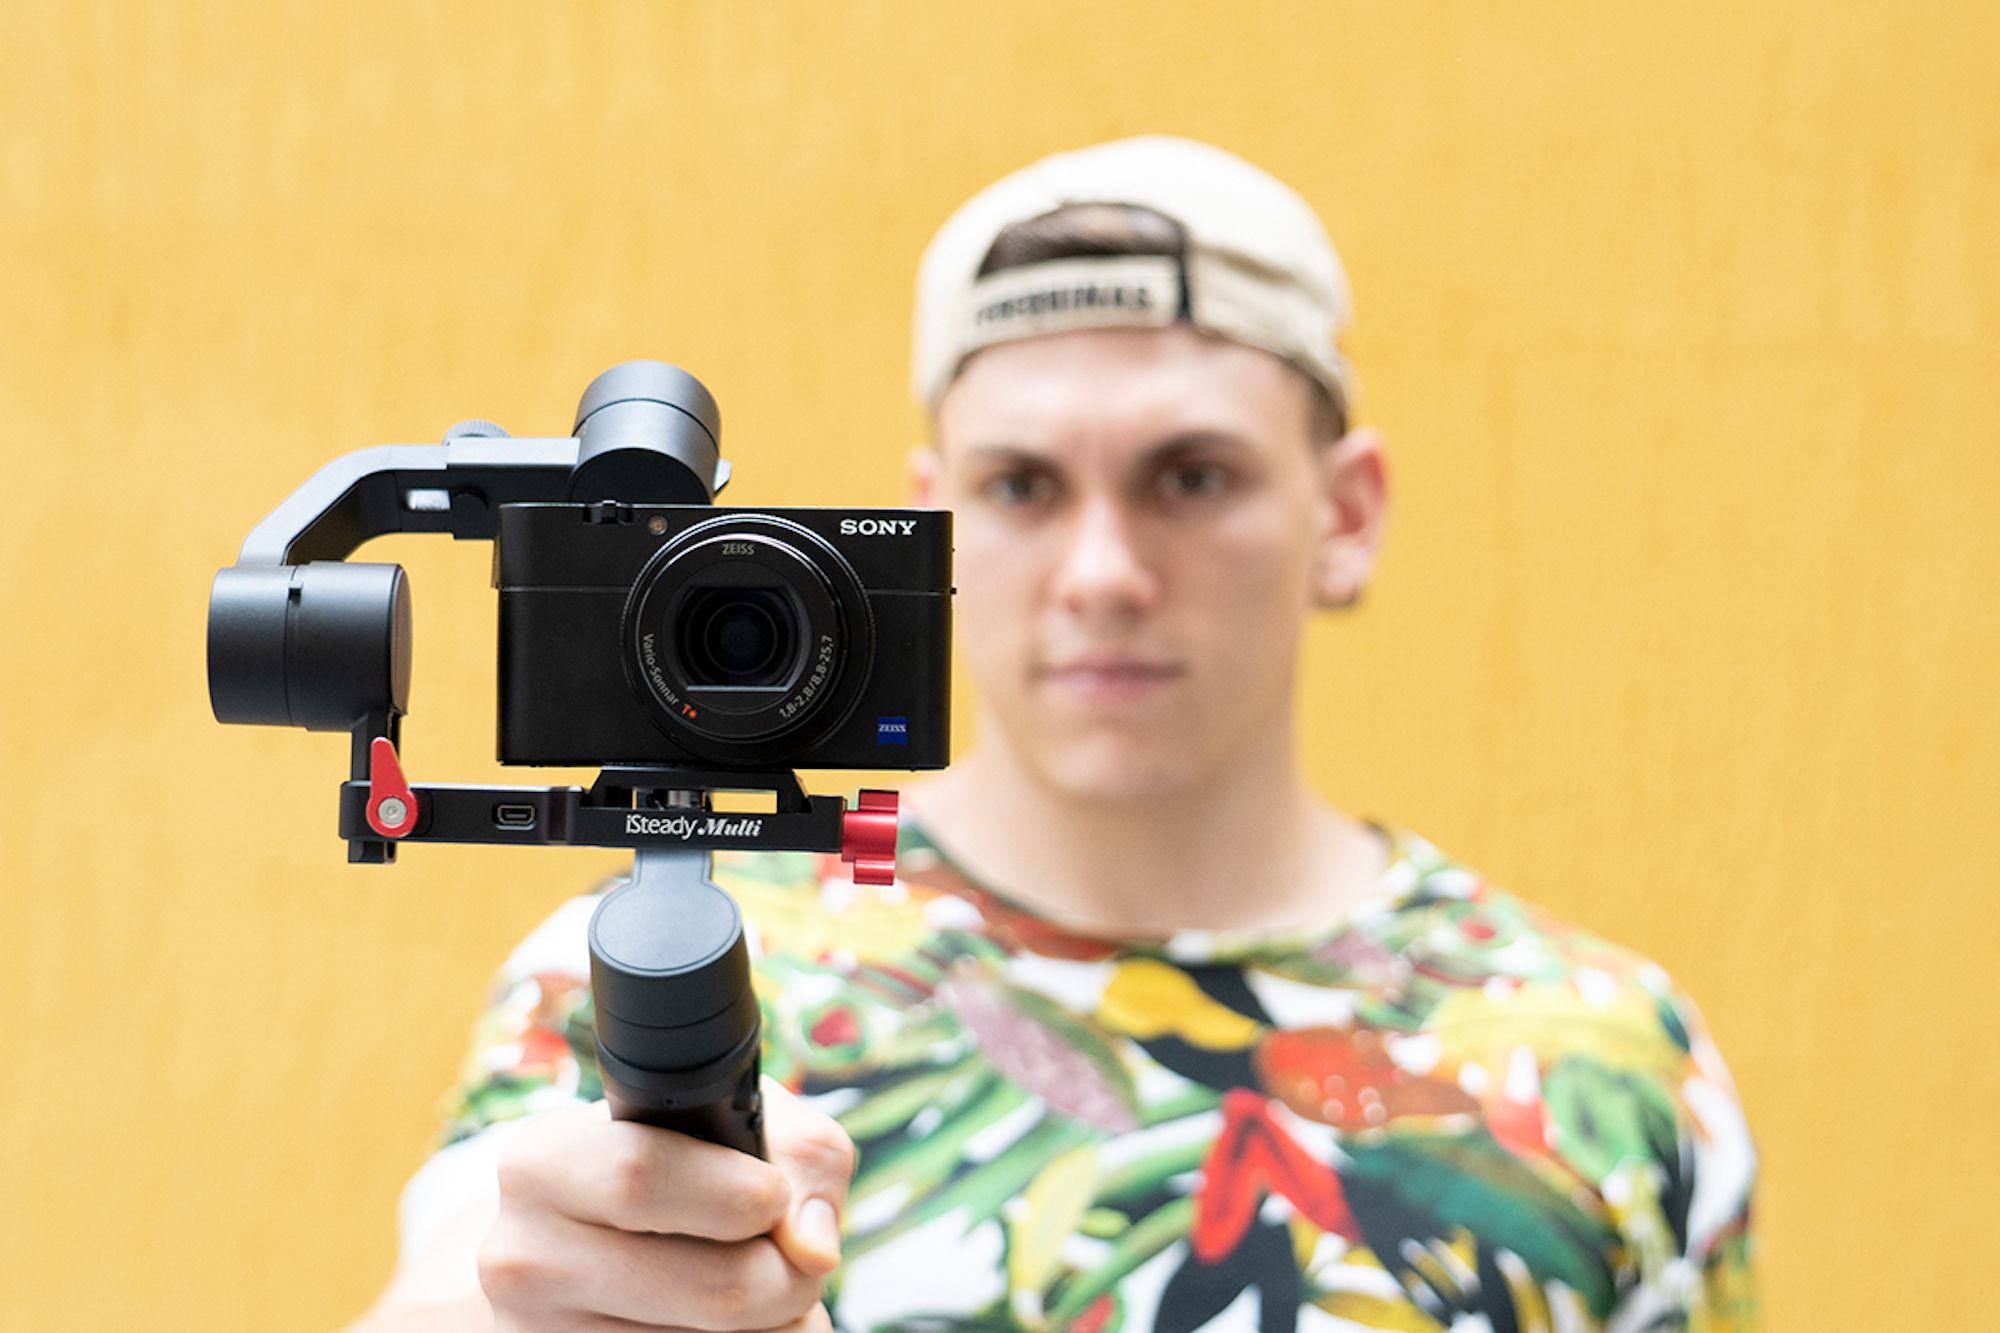 Make Shooting Product Photos and Videos Easy with This 3-Axis Gimbal